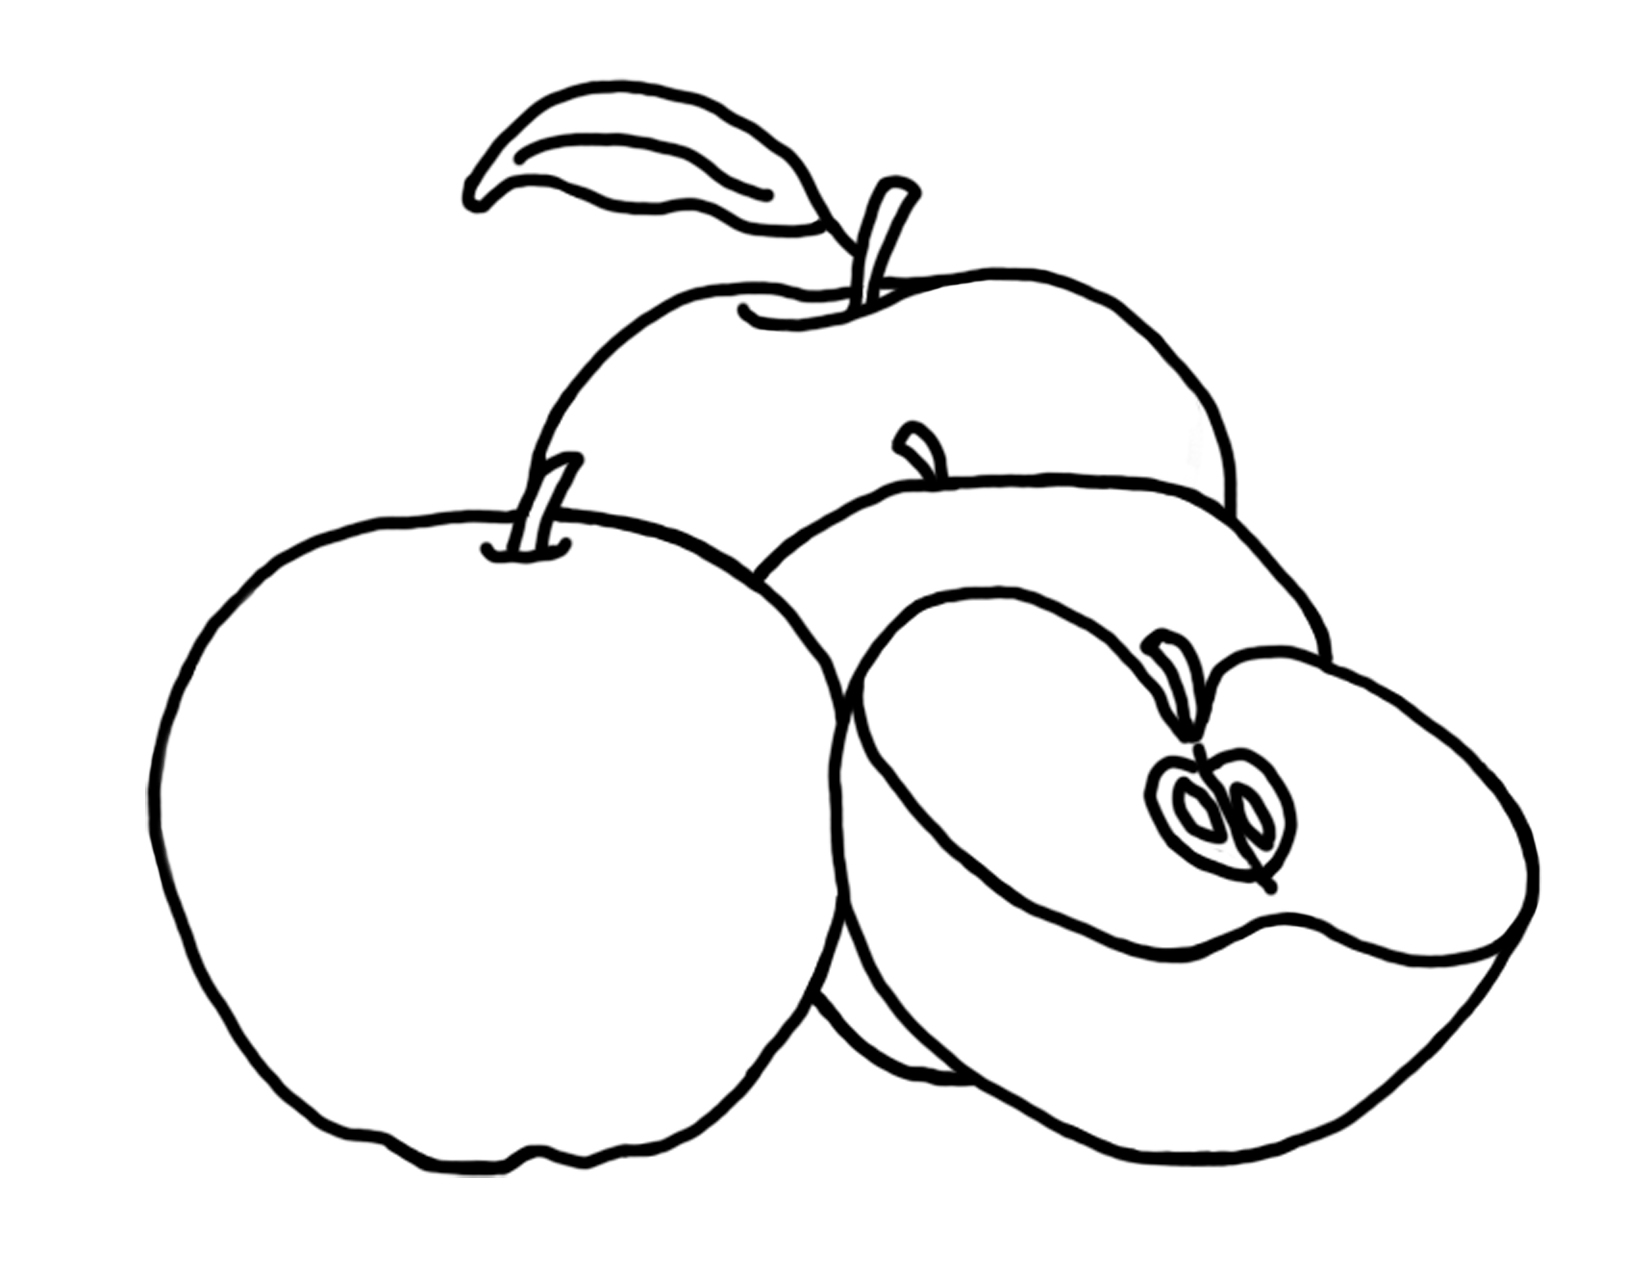 Free Printable Apple Coloring Pages Free Printable Apple Coloring Pages For Kids